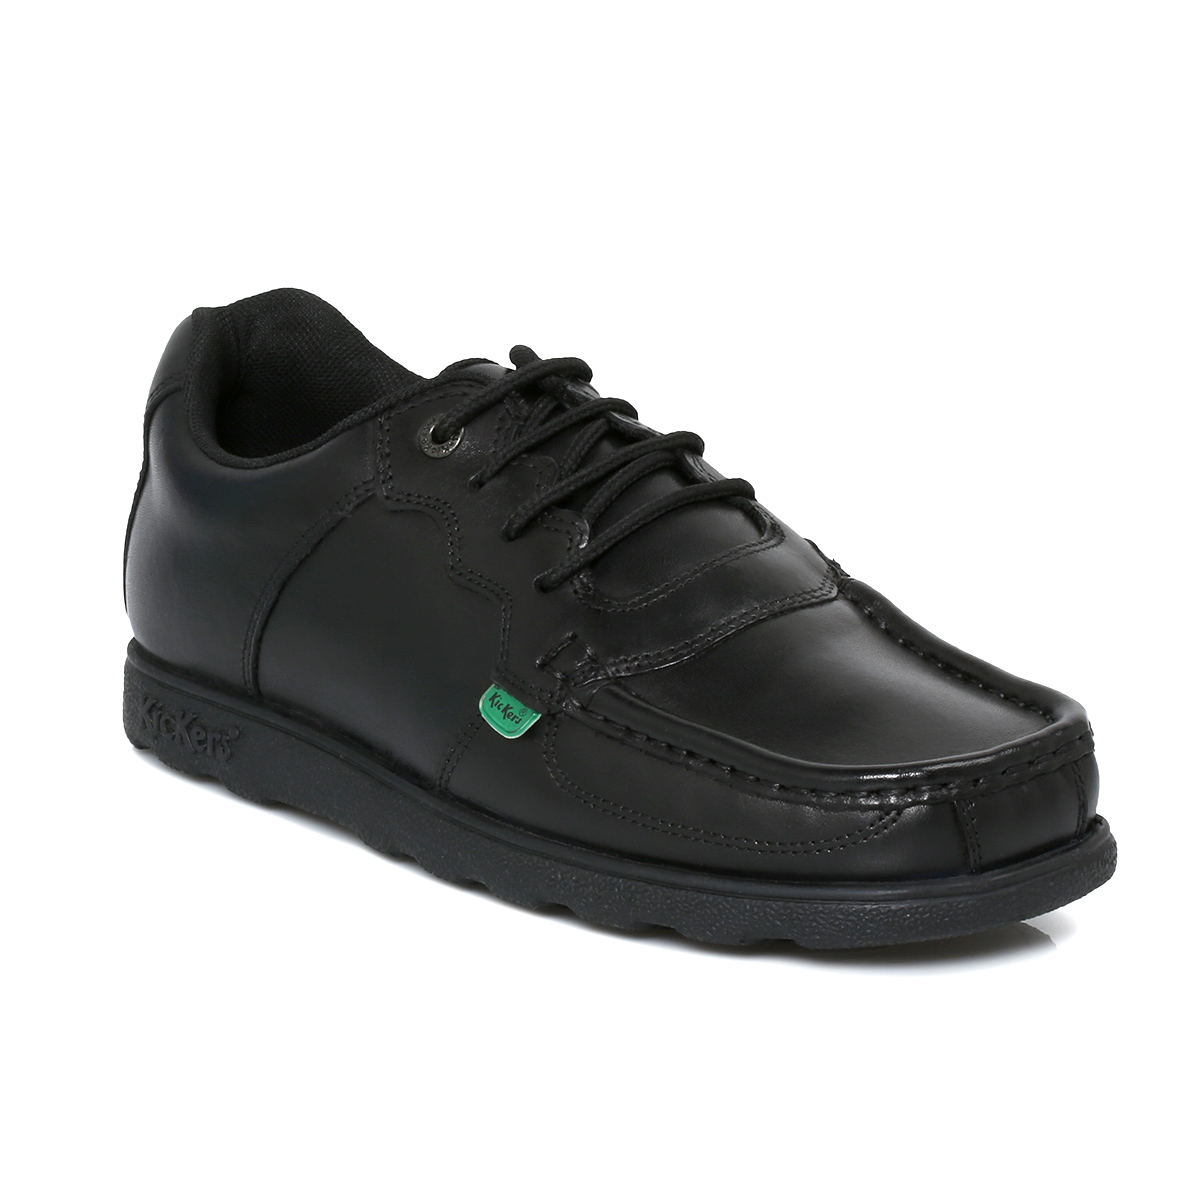 Older Boys Leather Kickers School Shoes